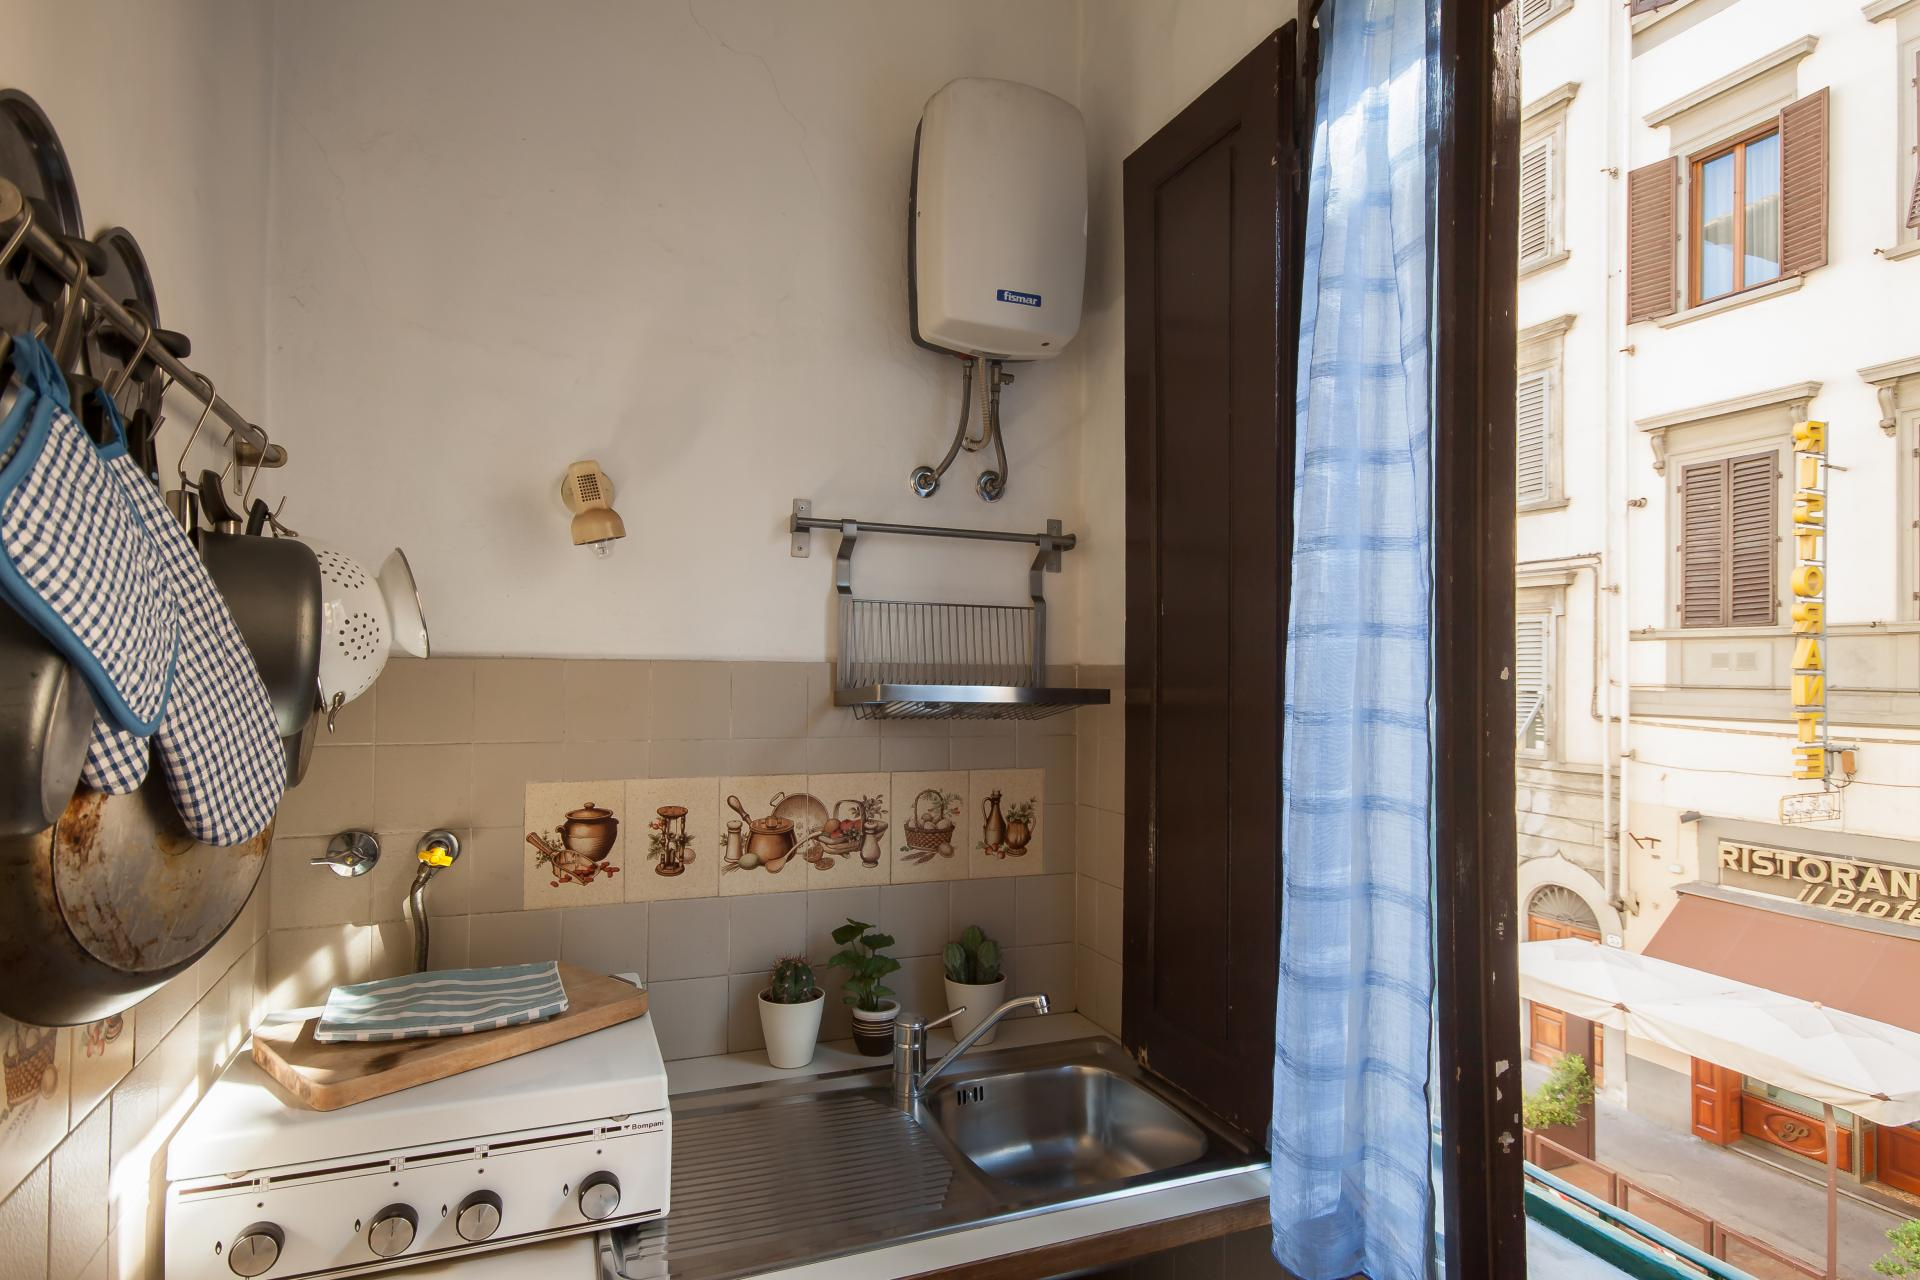 Kitchen area at Borgo Ognissanti Apartment, Centre, Florence